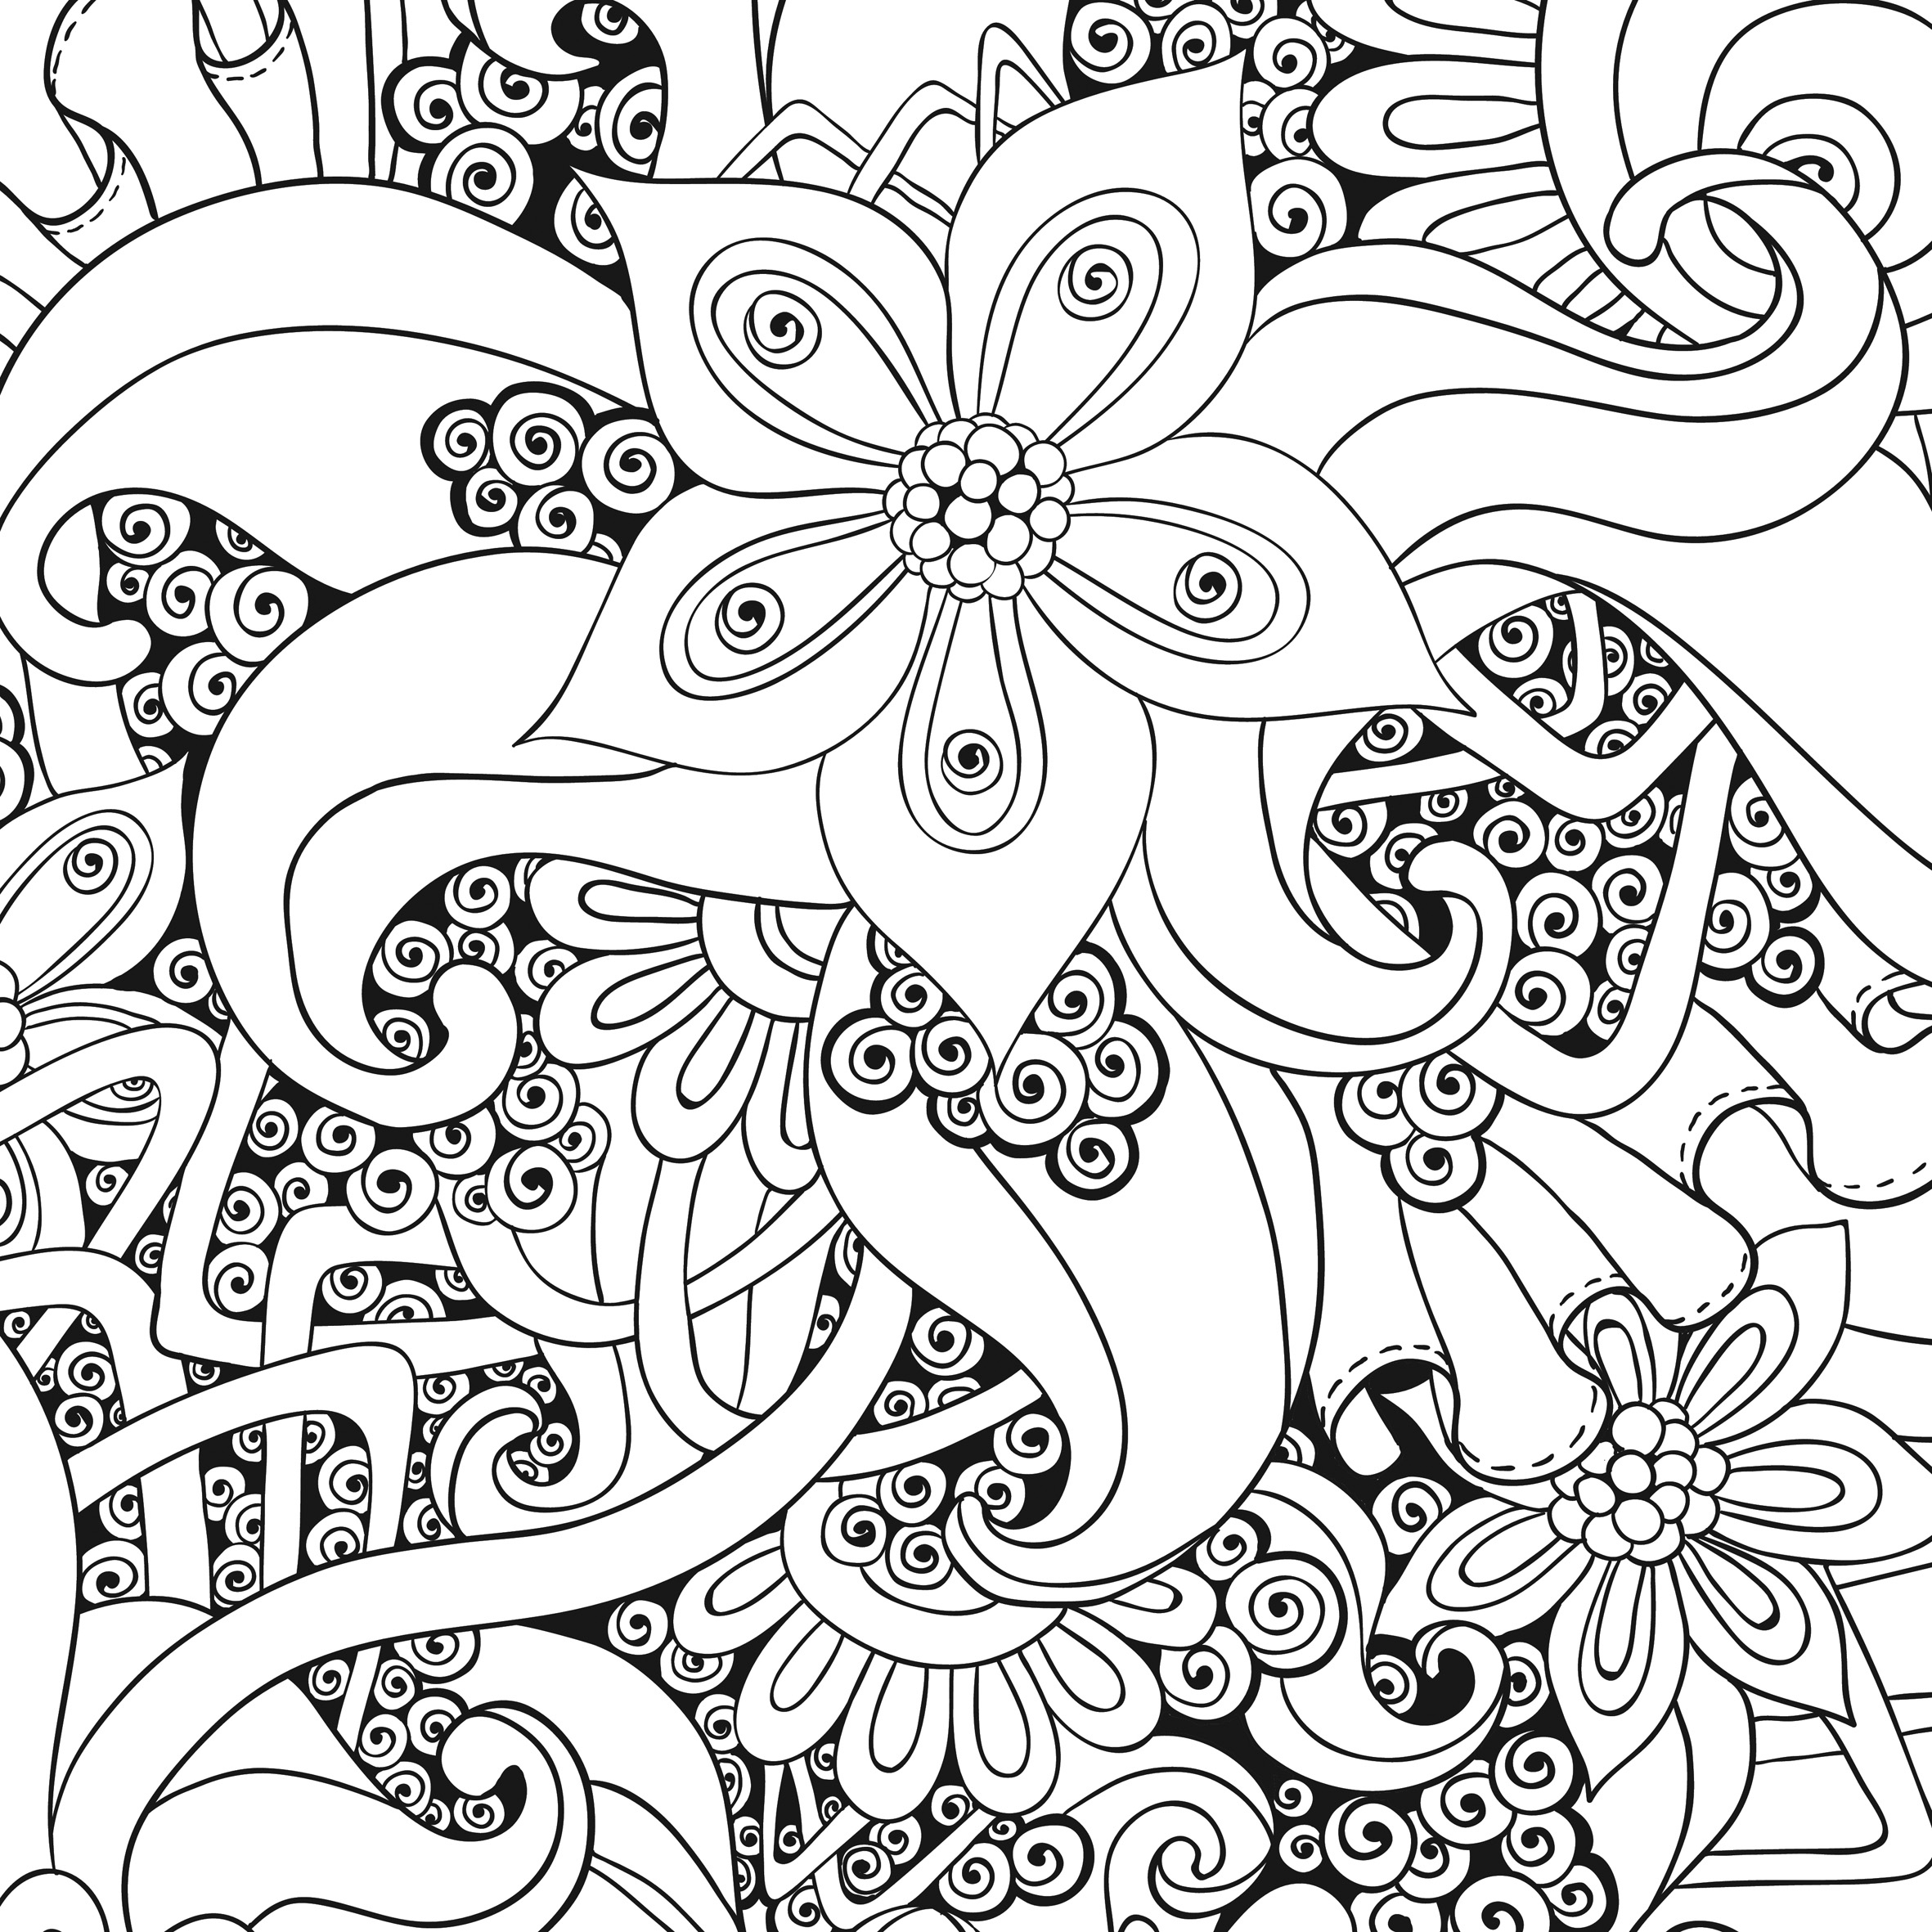 coloriage à dessiner anti stress nature